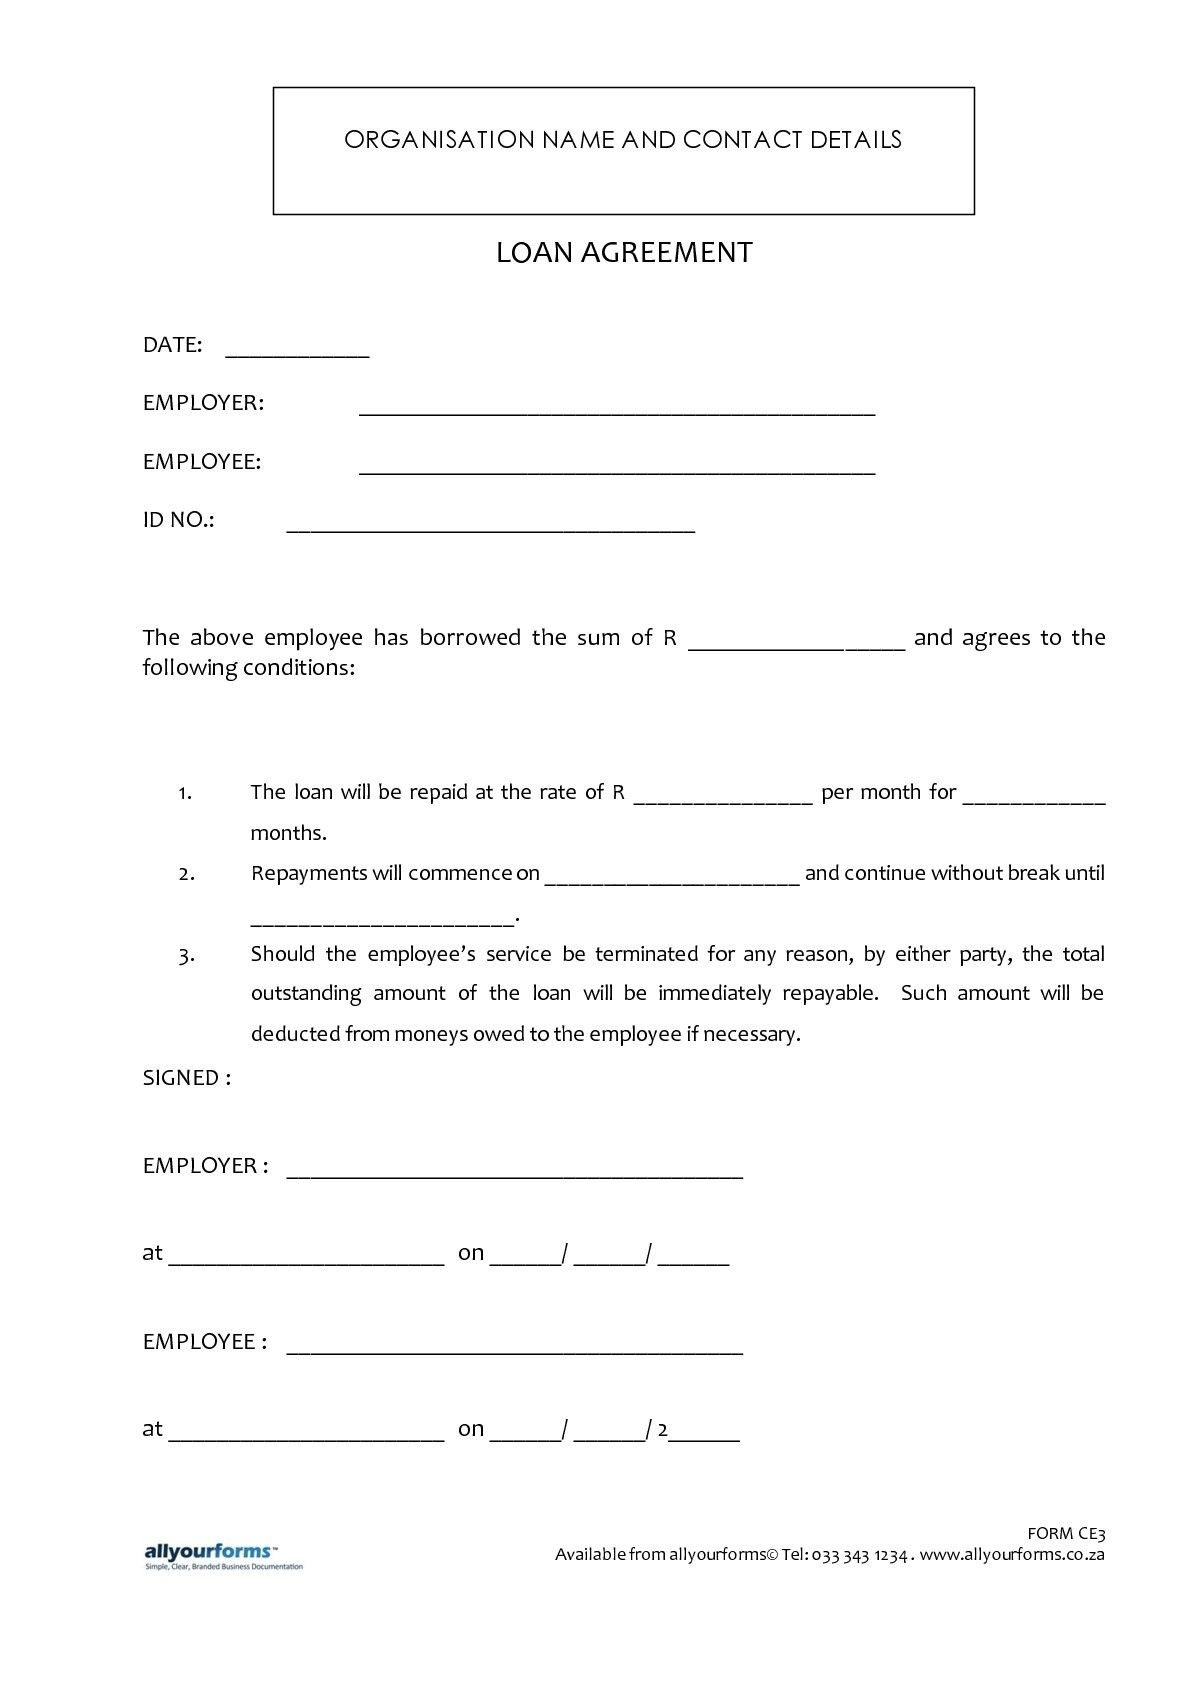 Printable Sample Loan Template Form | Laywers Template Forms Online | Google doc templates ...